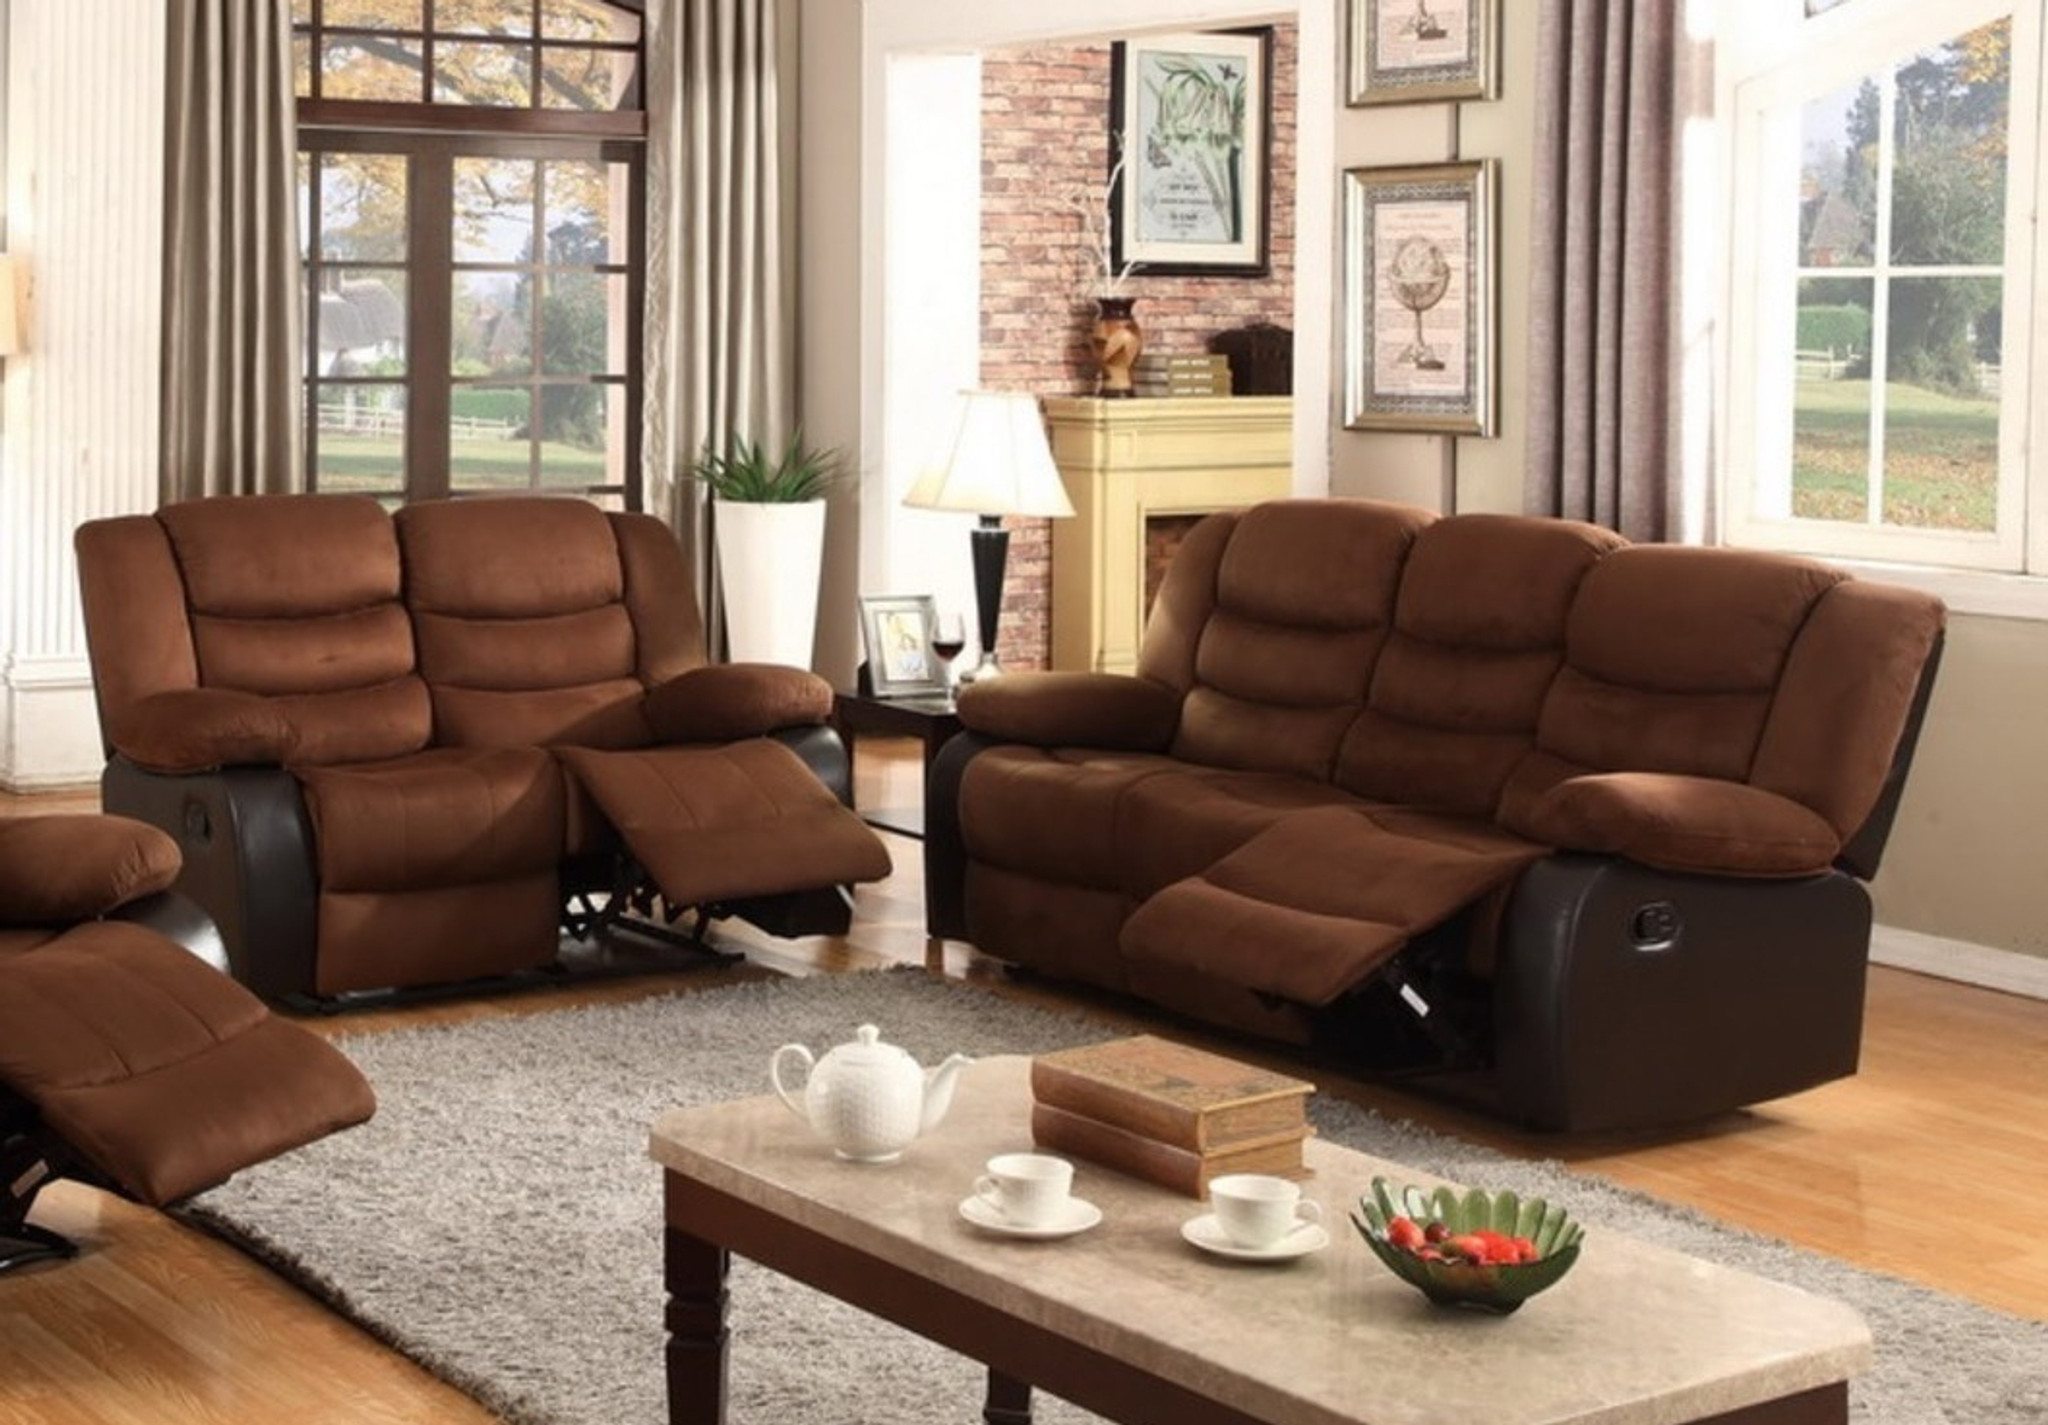 Wondrous 2Pc Dakota Microfiber Recliner Sofa And Loveseat Machost Co Dining Chair Design Ideas Machostcouk